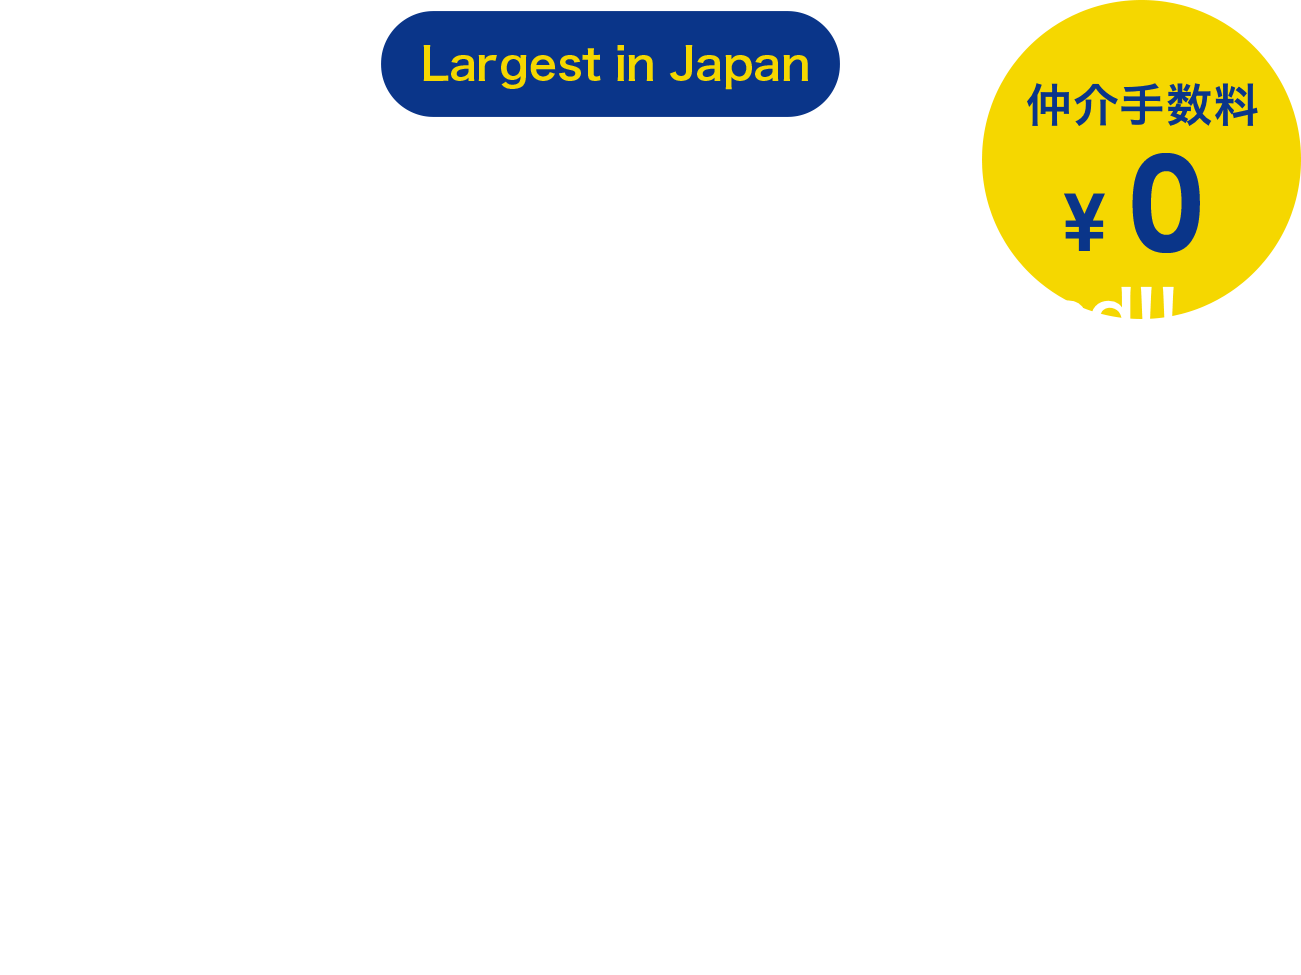 【JUST FIT OFFICE】Japan's largest office search and comparison service